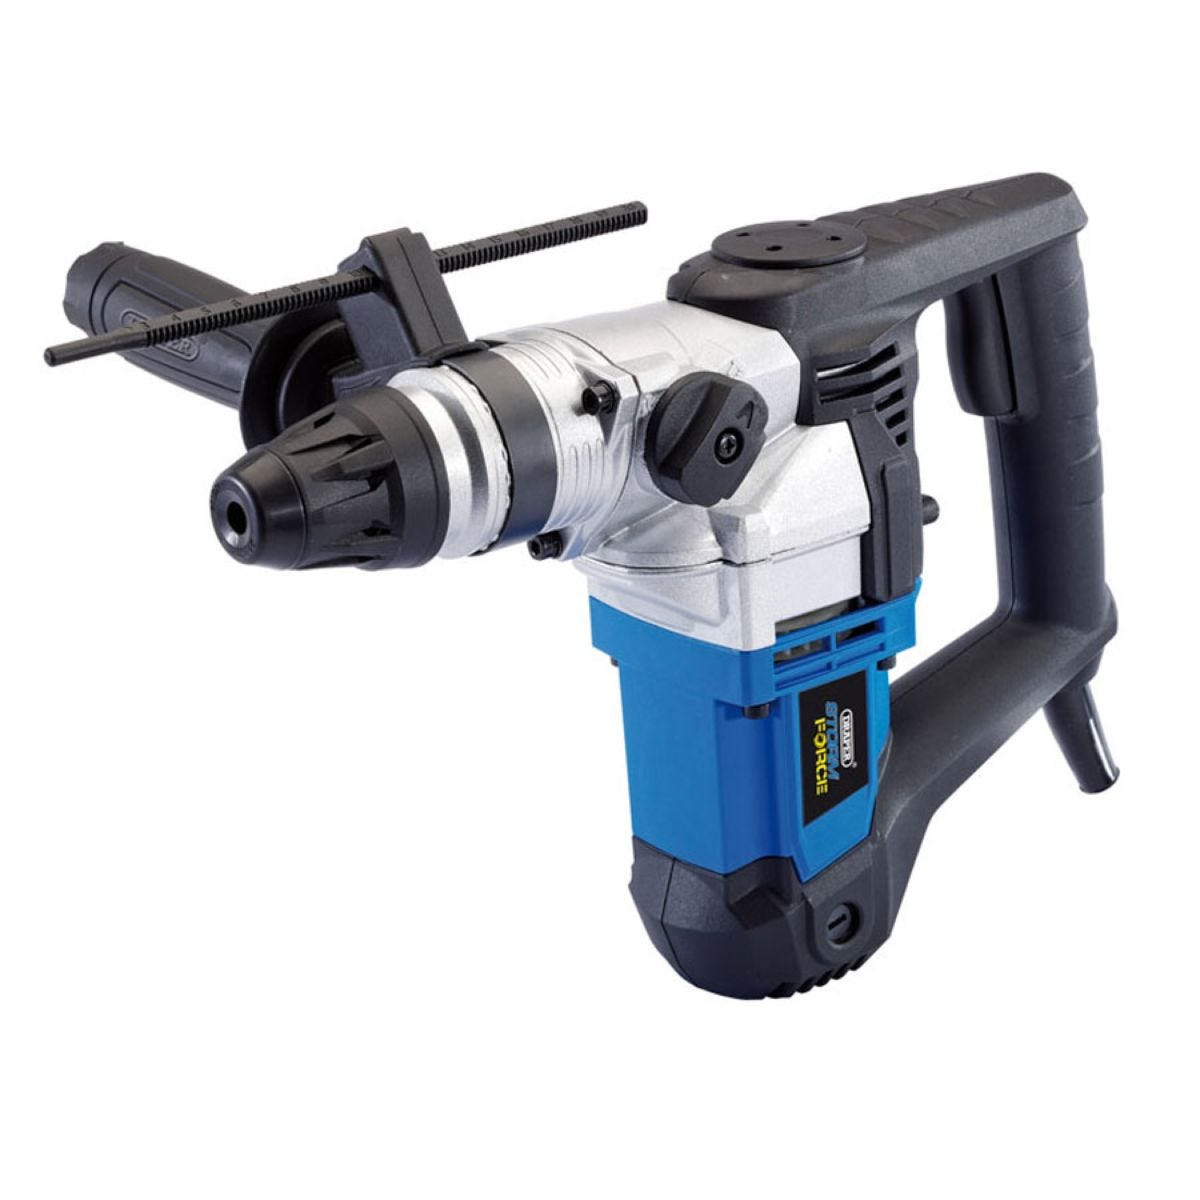 Draper 900W Storm Force SDS+ Rotary Hammer Drill Kit with Rotation Stop